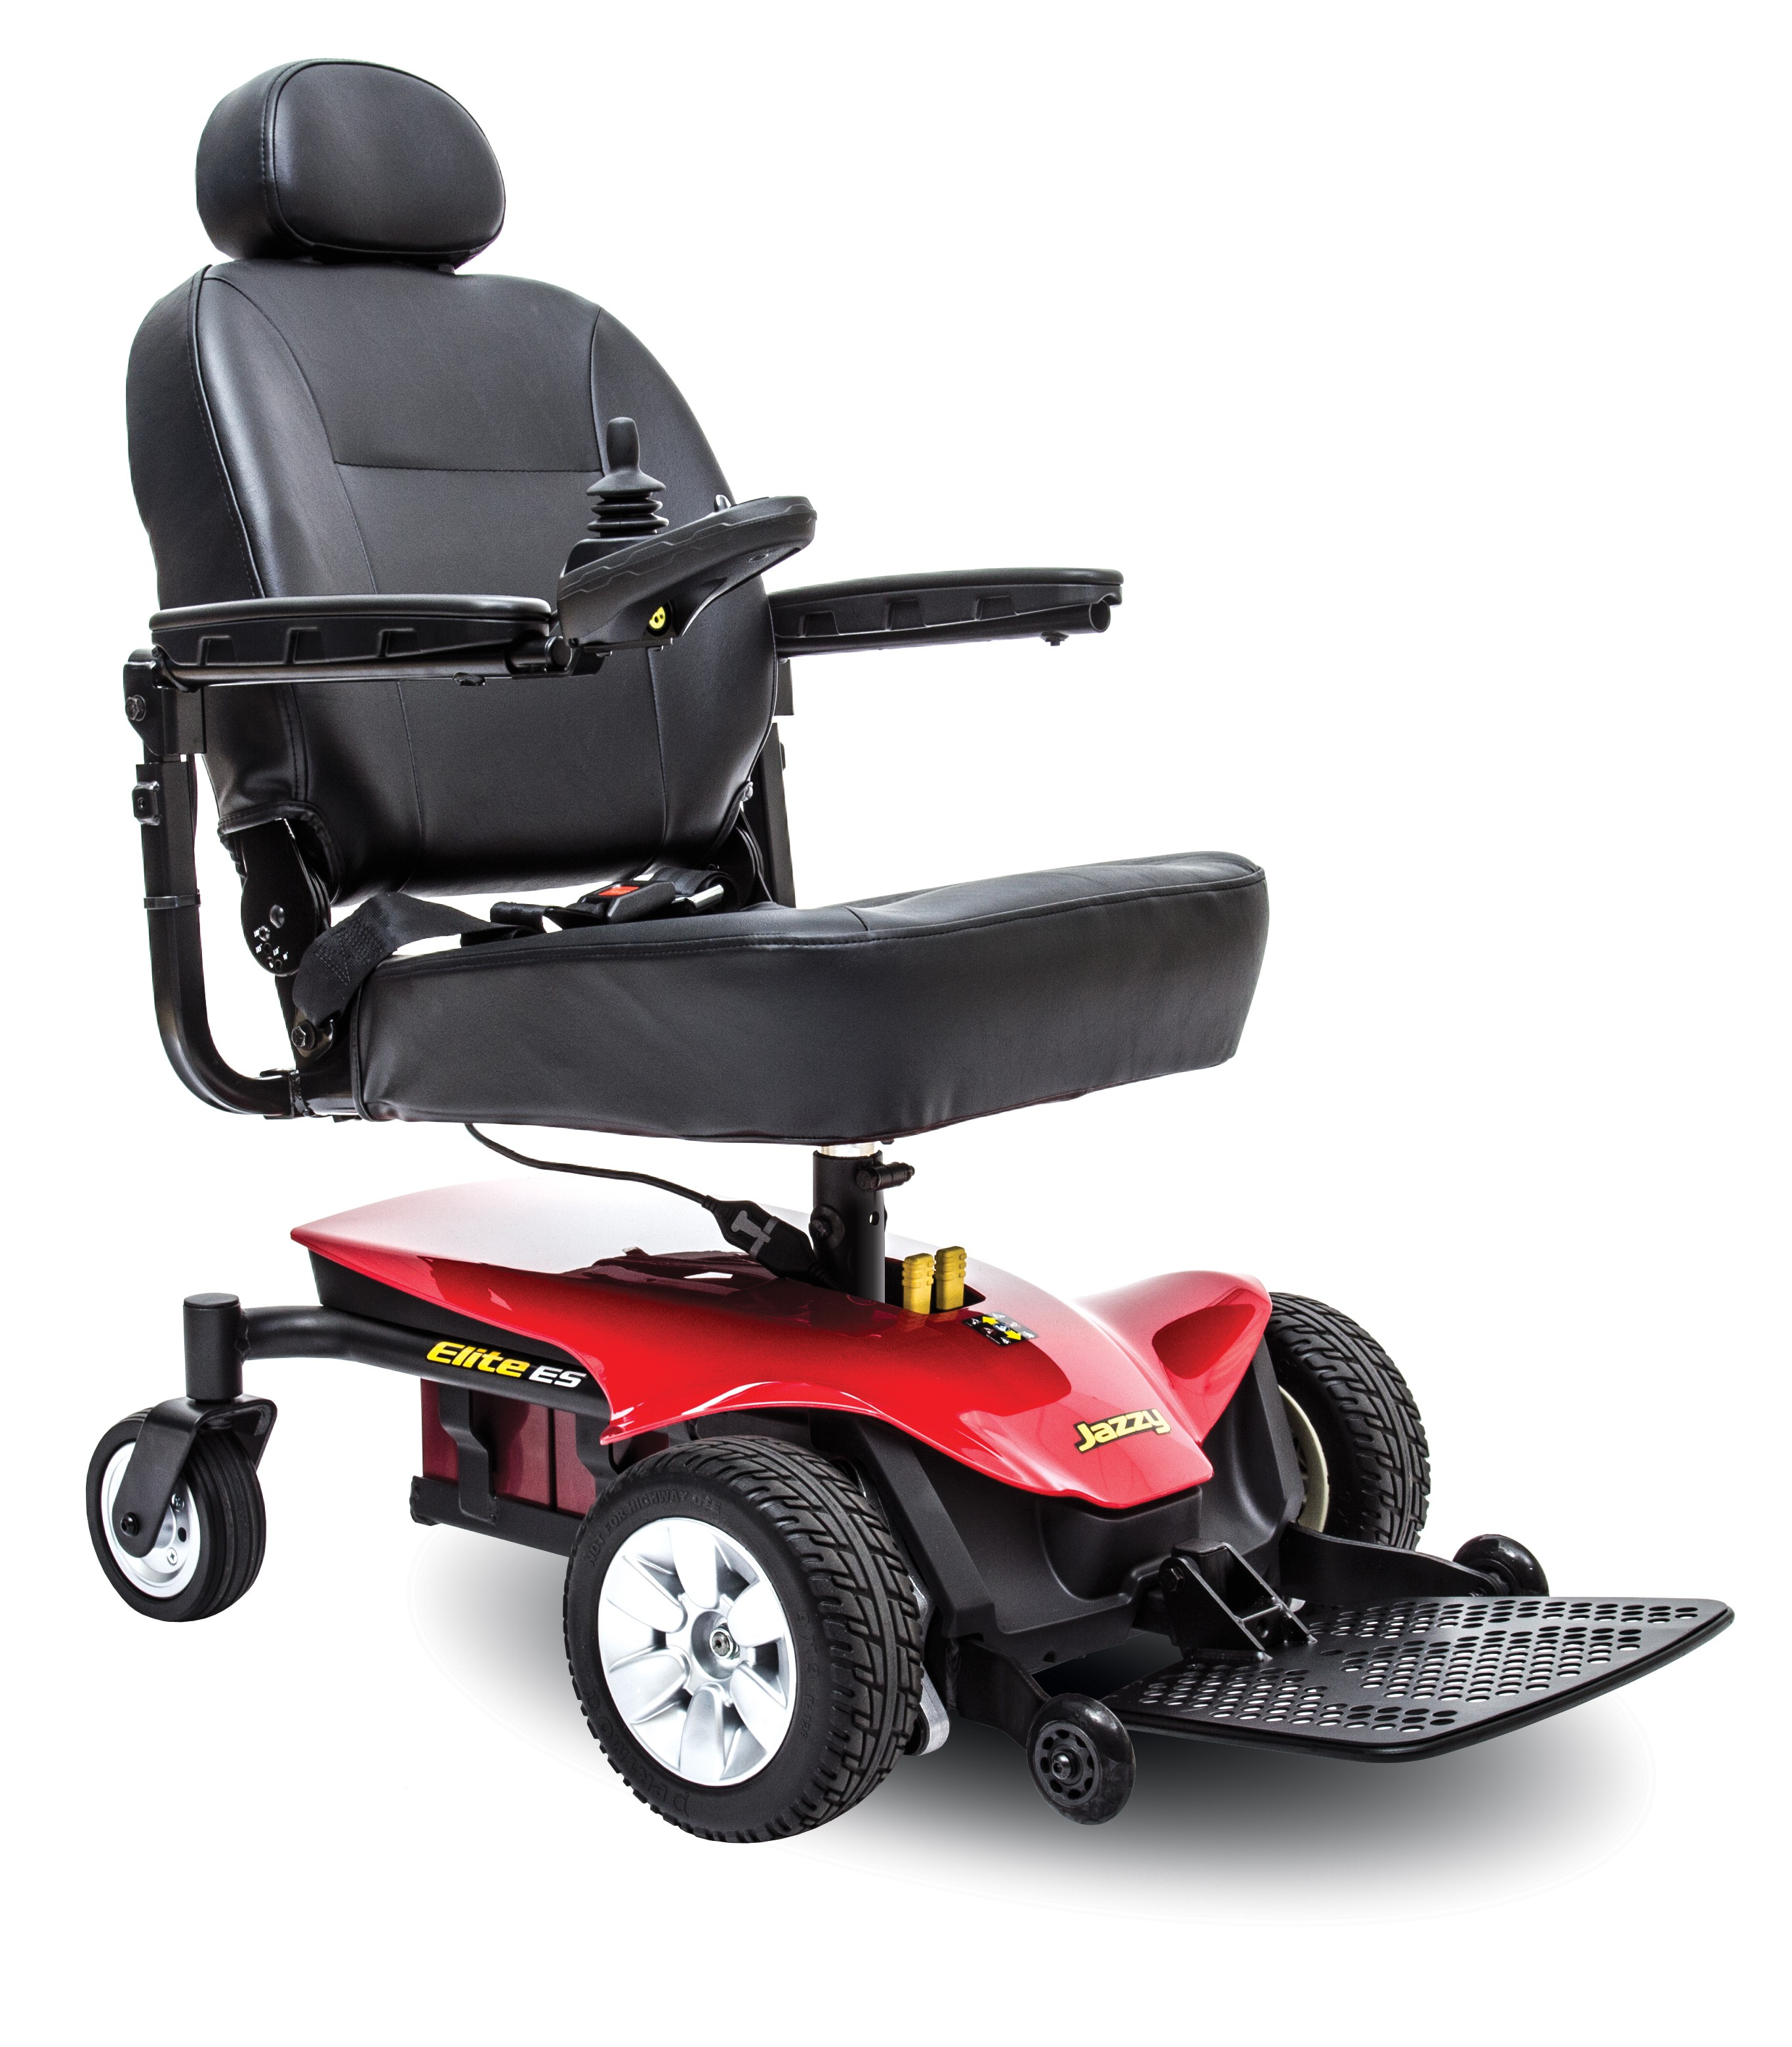 transport walker chair leather chairs of bath lansdown best quality power wheelchairs & accessories | pride mobility jazzy scooter city